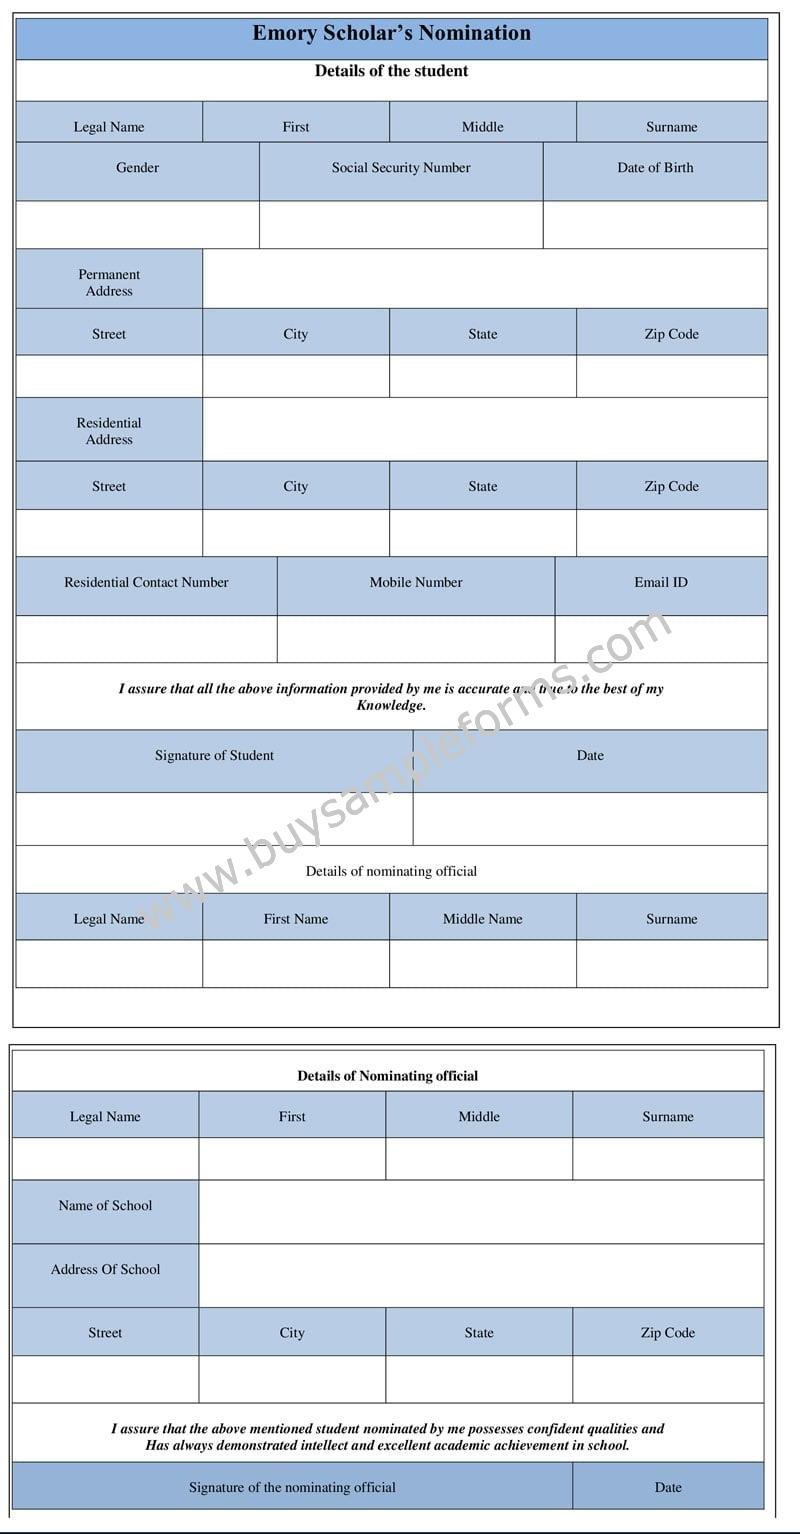 Emory Scholars Nomination Form template